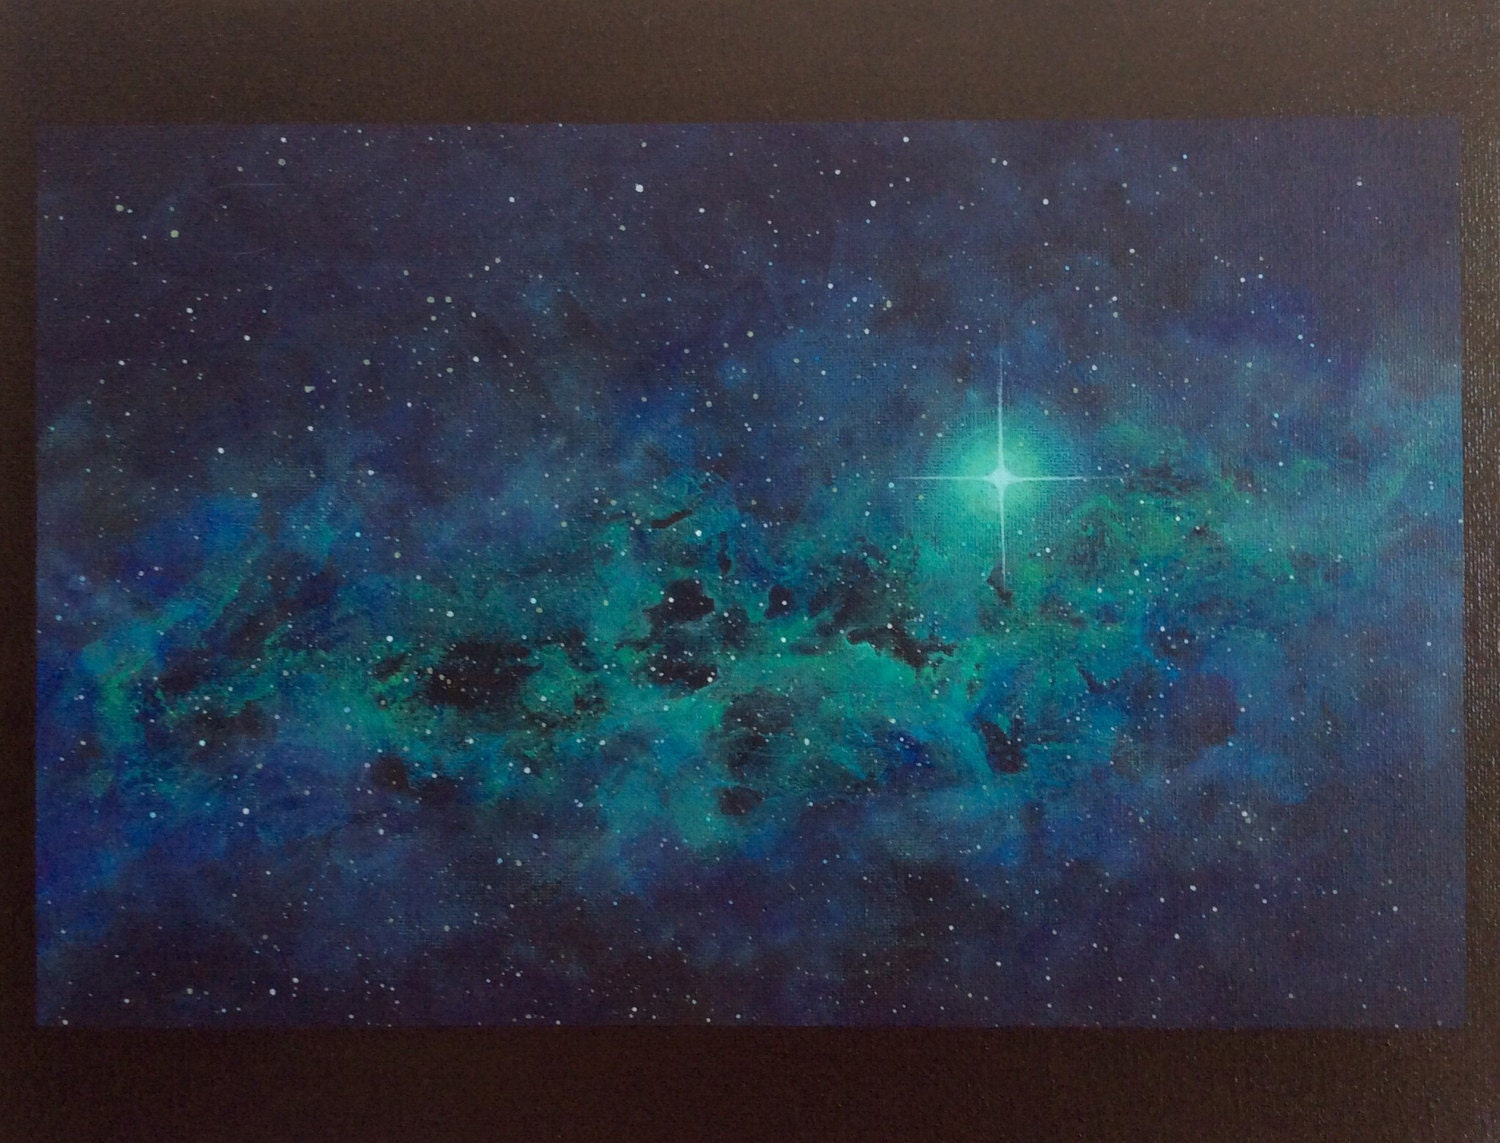 teal space nebula - photo #1